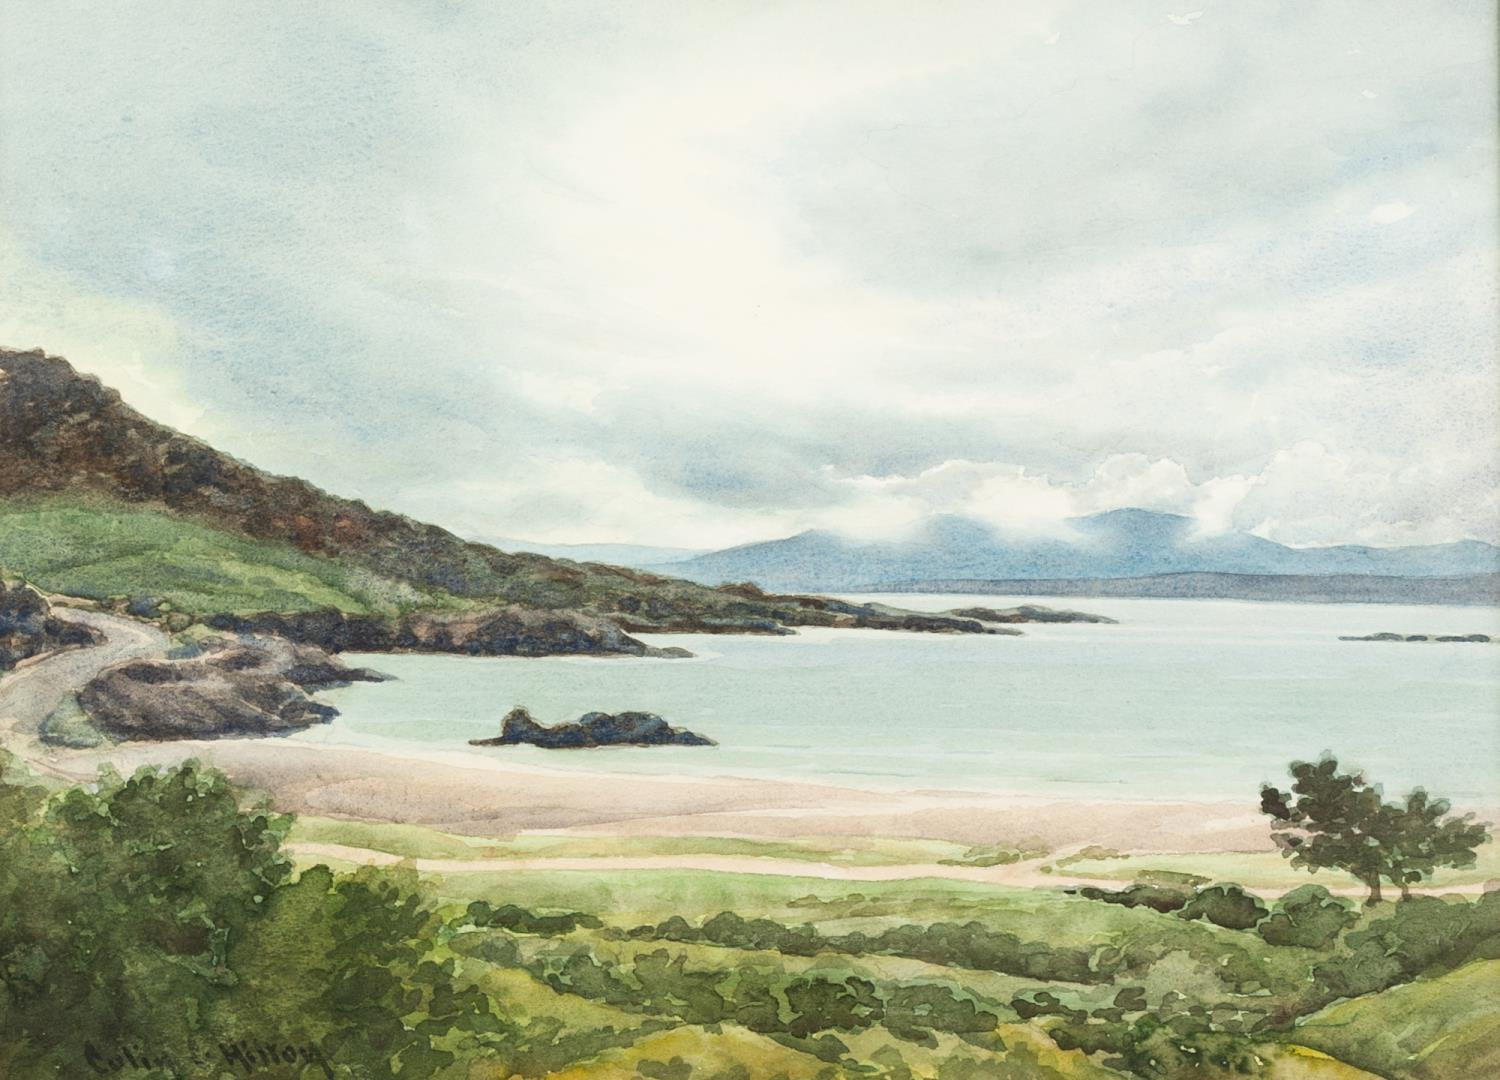 Lot 194 - COLIN C HILTON (Modern) WATERCOLOUR DRAWING 'West Coast of Ireland' Signed lower left, titled on